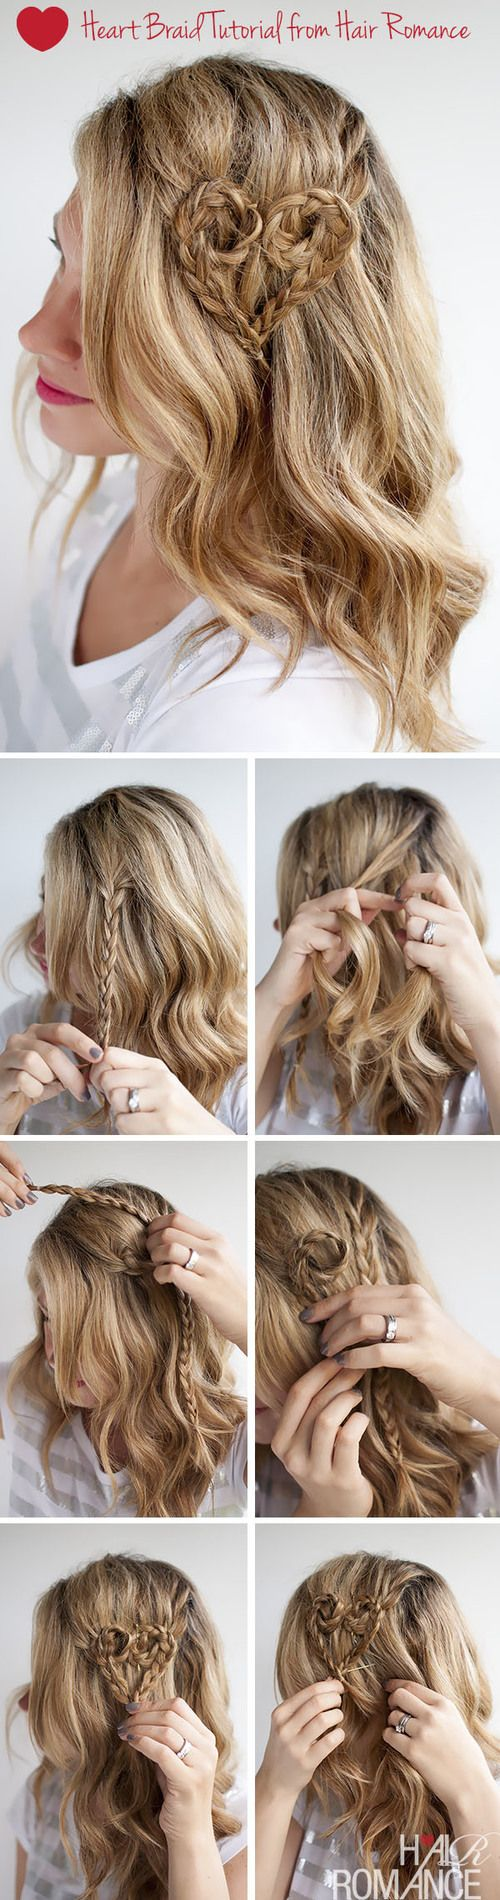 Valentine's Day Hairstyle Tutorial – Heart Braid Hairstyle   Hair Romance on we heart it / visual bookmark #53744698